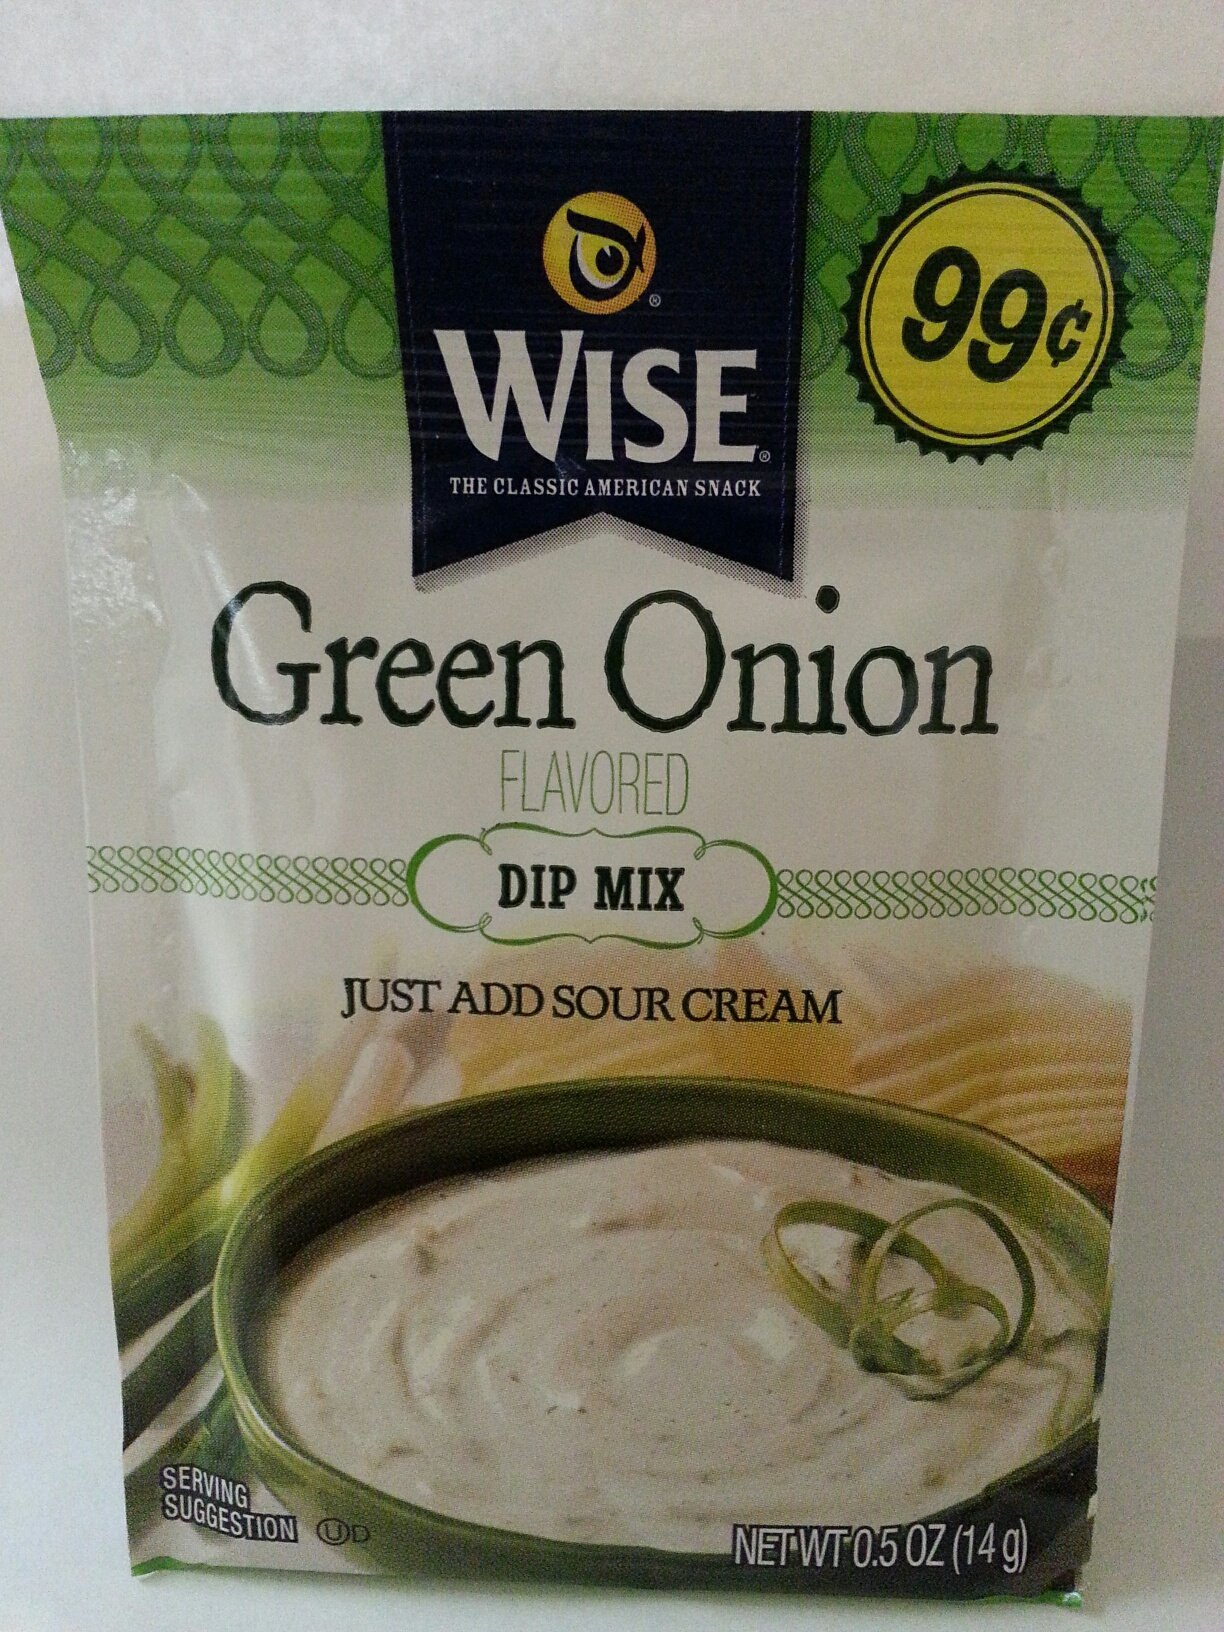 Wise Green Onion Dip Mix 10 Pk by Wise Snack Foods